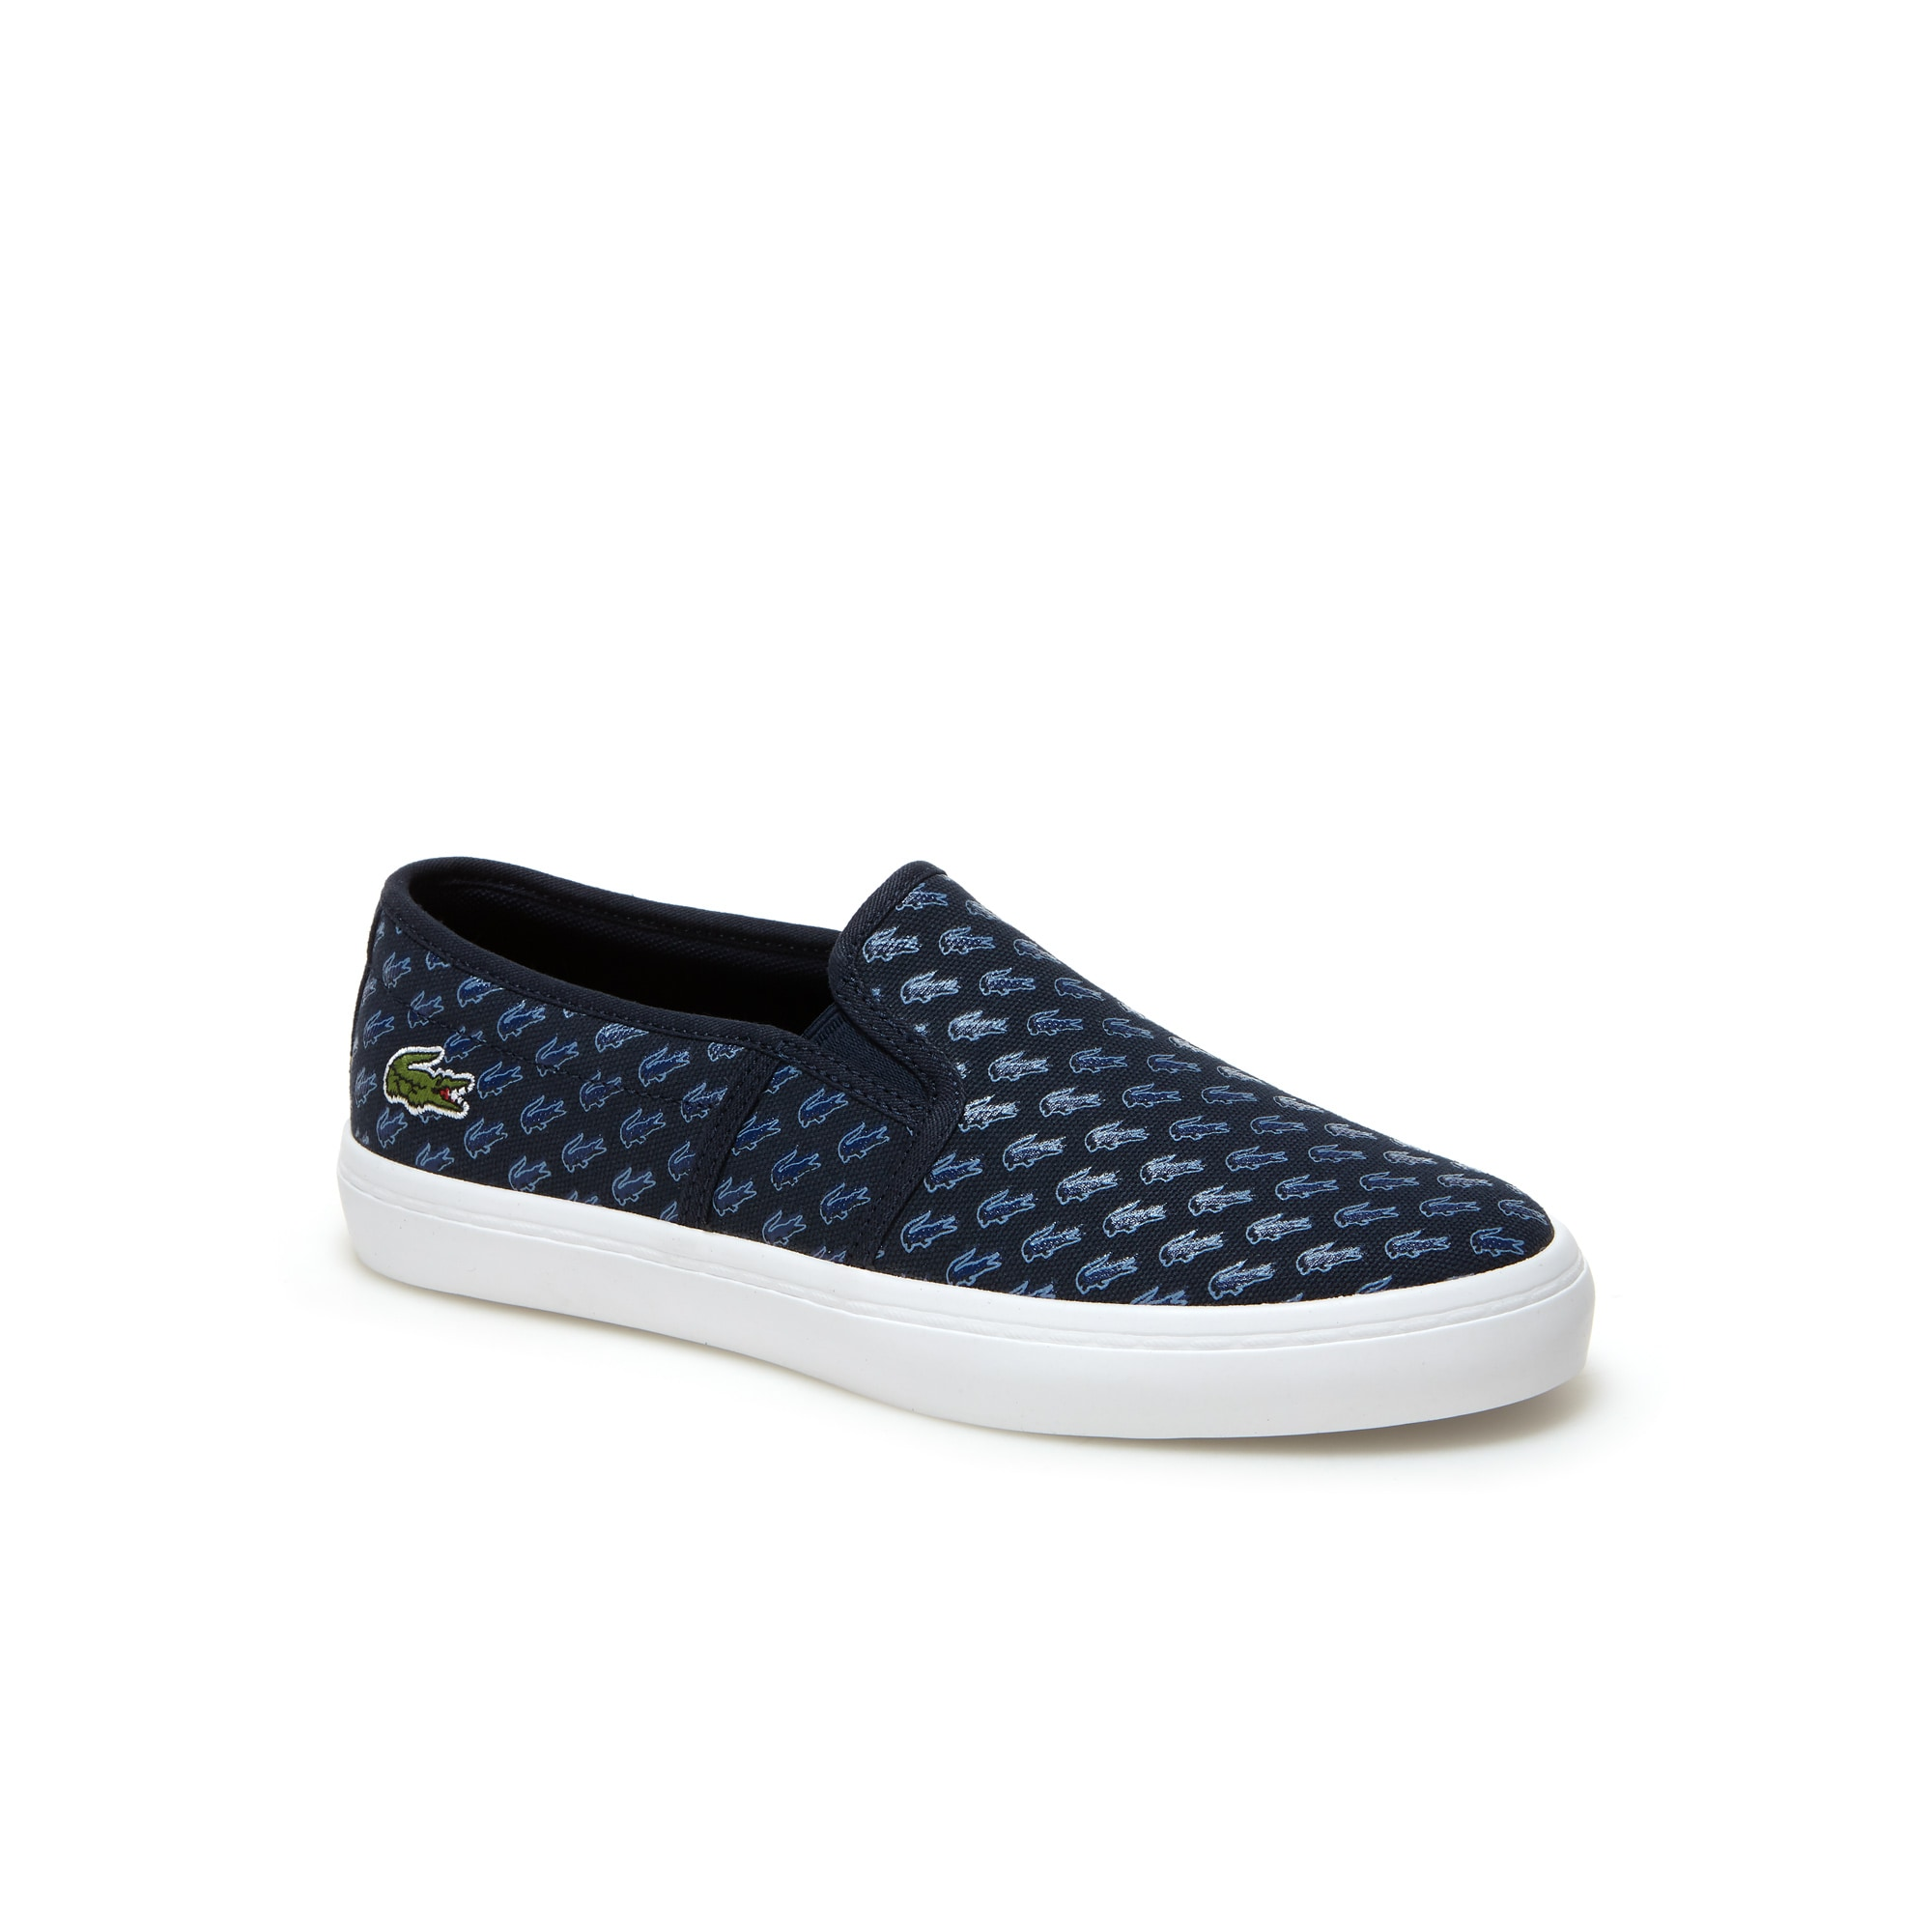 Lacoste Sneakers Gazon Dark Blue Print